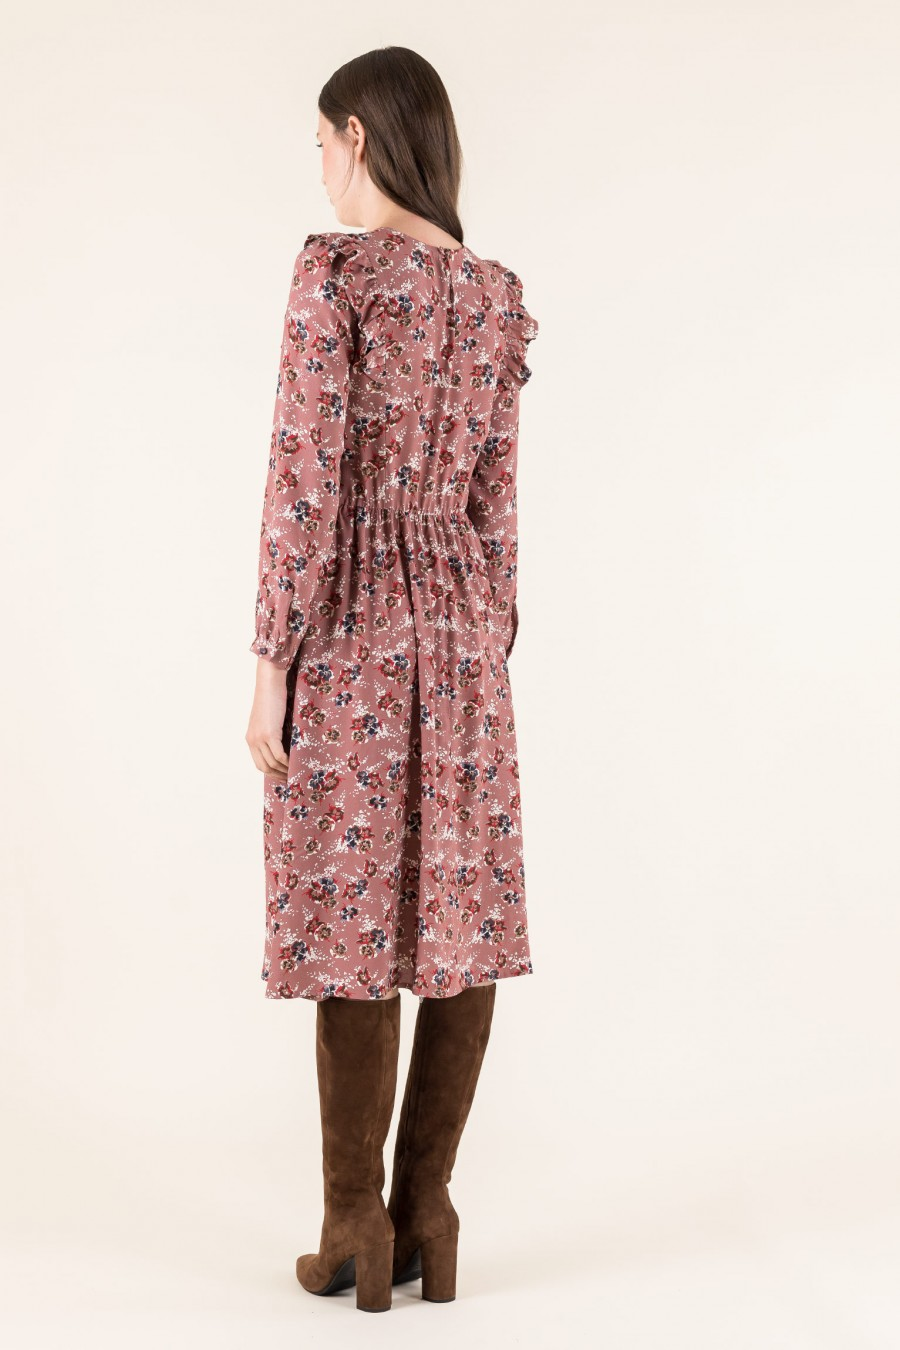 Autumn dress with flowers print